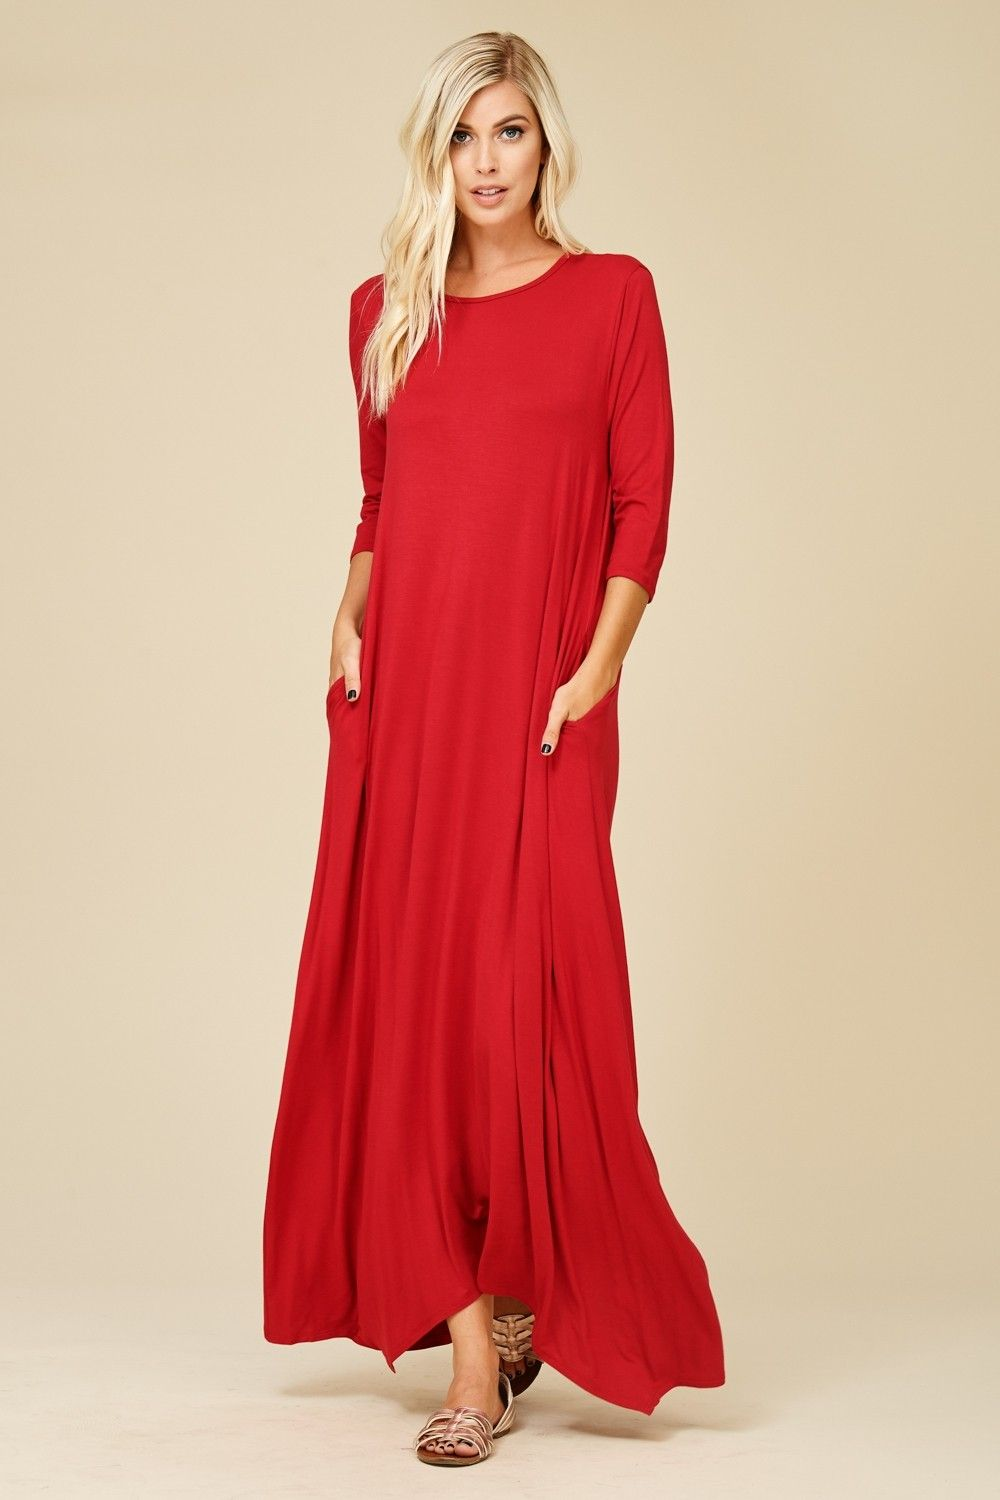 3 4 Sleeve Maxi Dress Style D5212 Knit Dress Featuring Solid 3 4 Sleeves Round Neck Side Pockets Maxi Dress R Maxi Dress With Sleeves Maxi Dress Dresses [ 1500 x 1000 Pixel ]